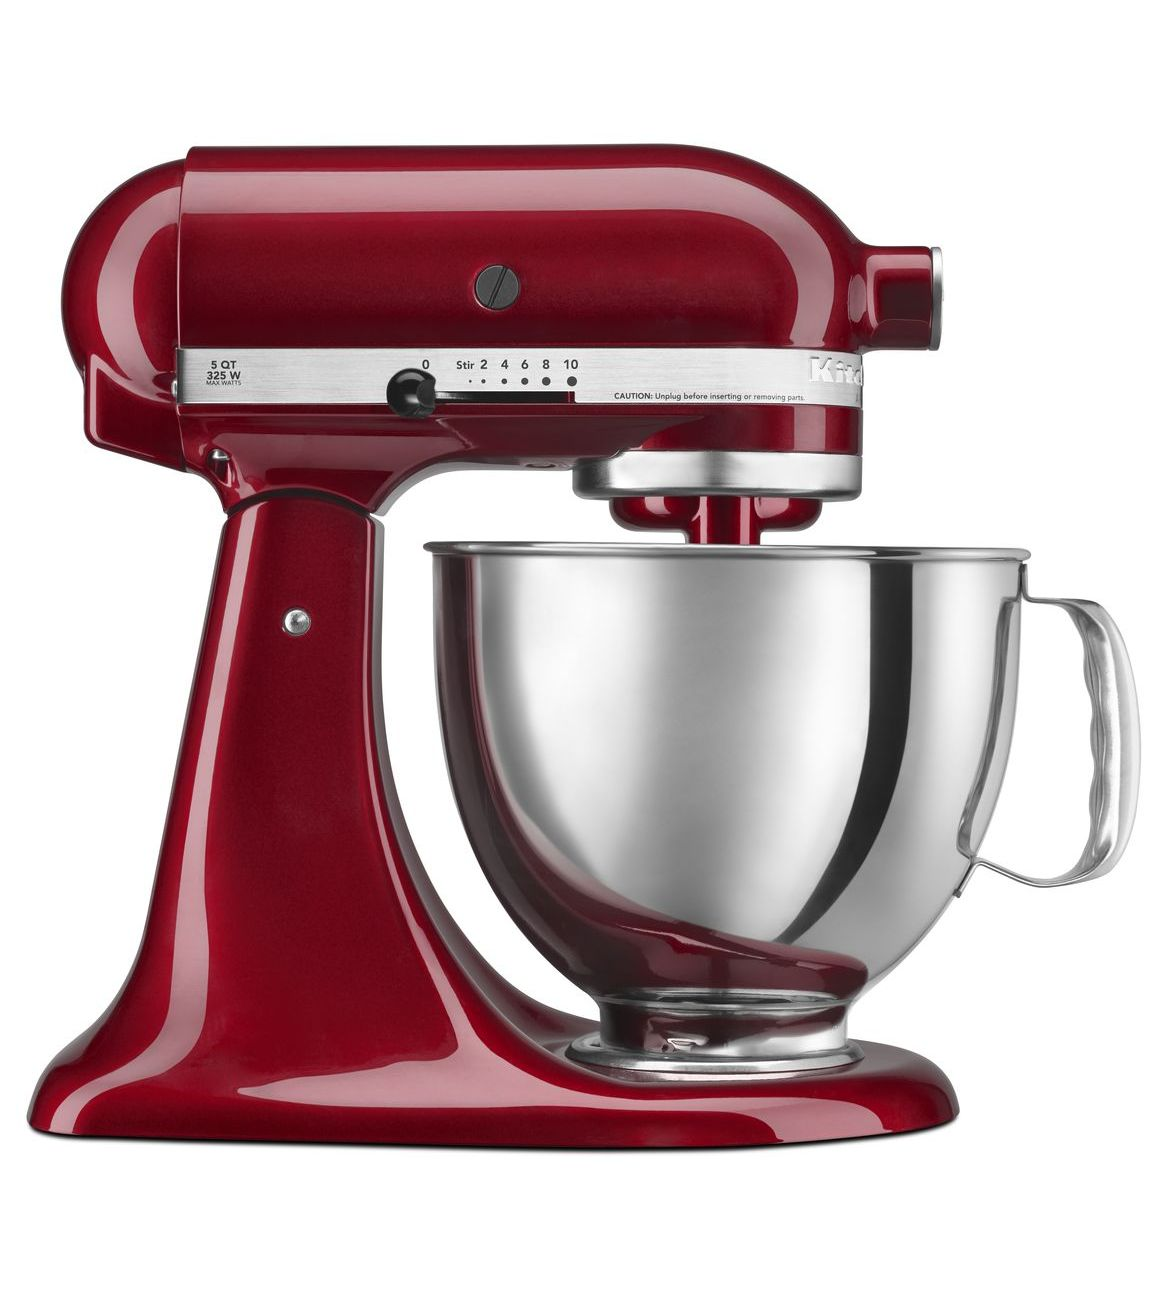 KitchenAid® Refurbished Artisan® Series 5 Quart Tilt-Head Stand Mixer, RRK150 Grenadine